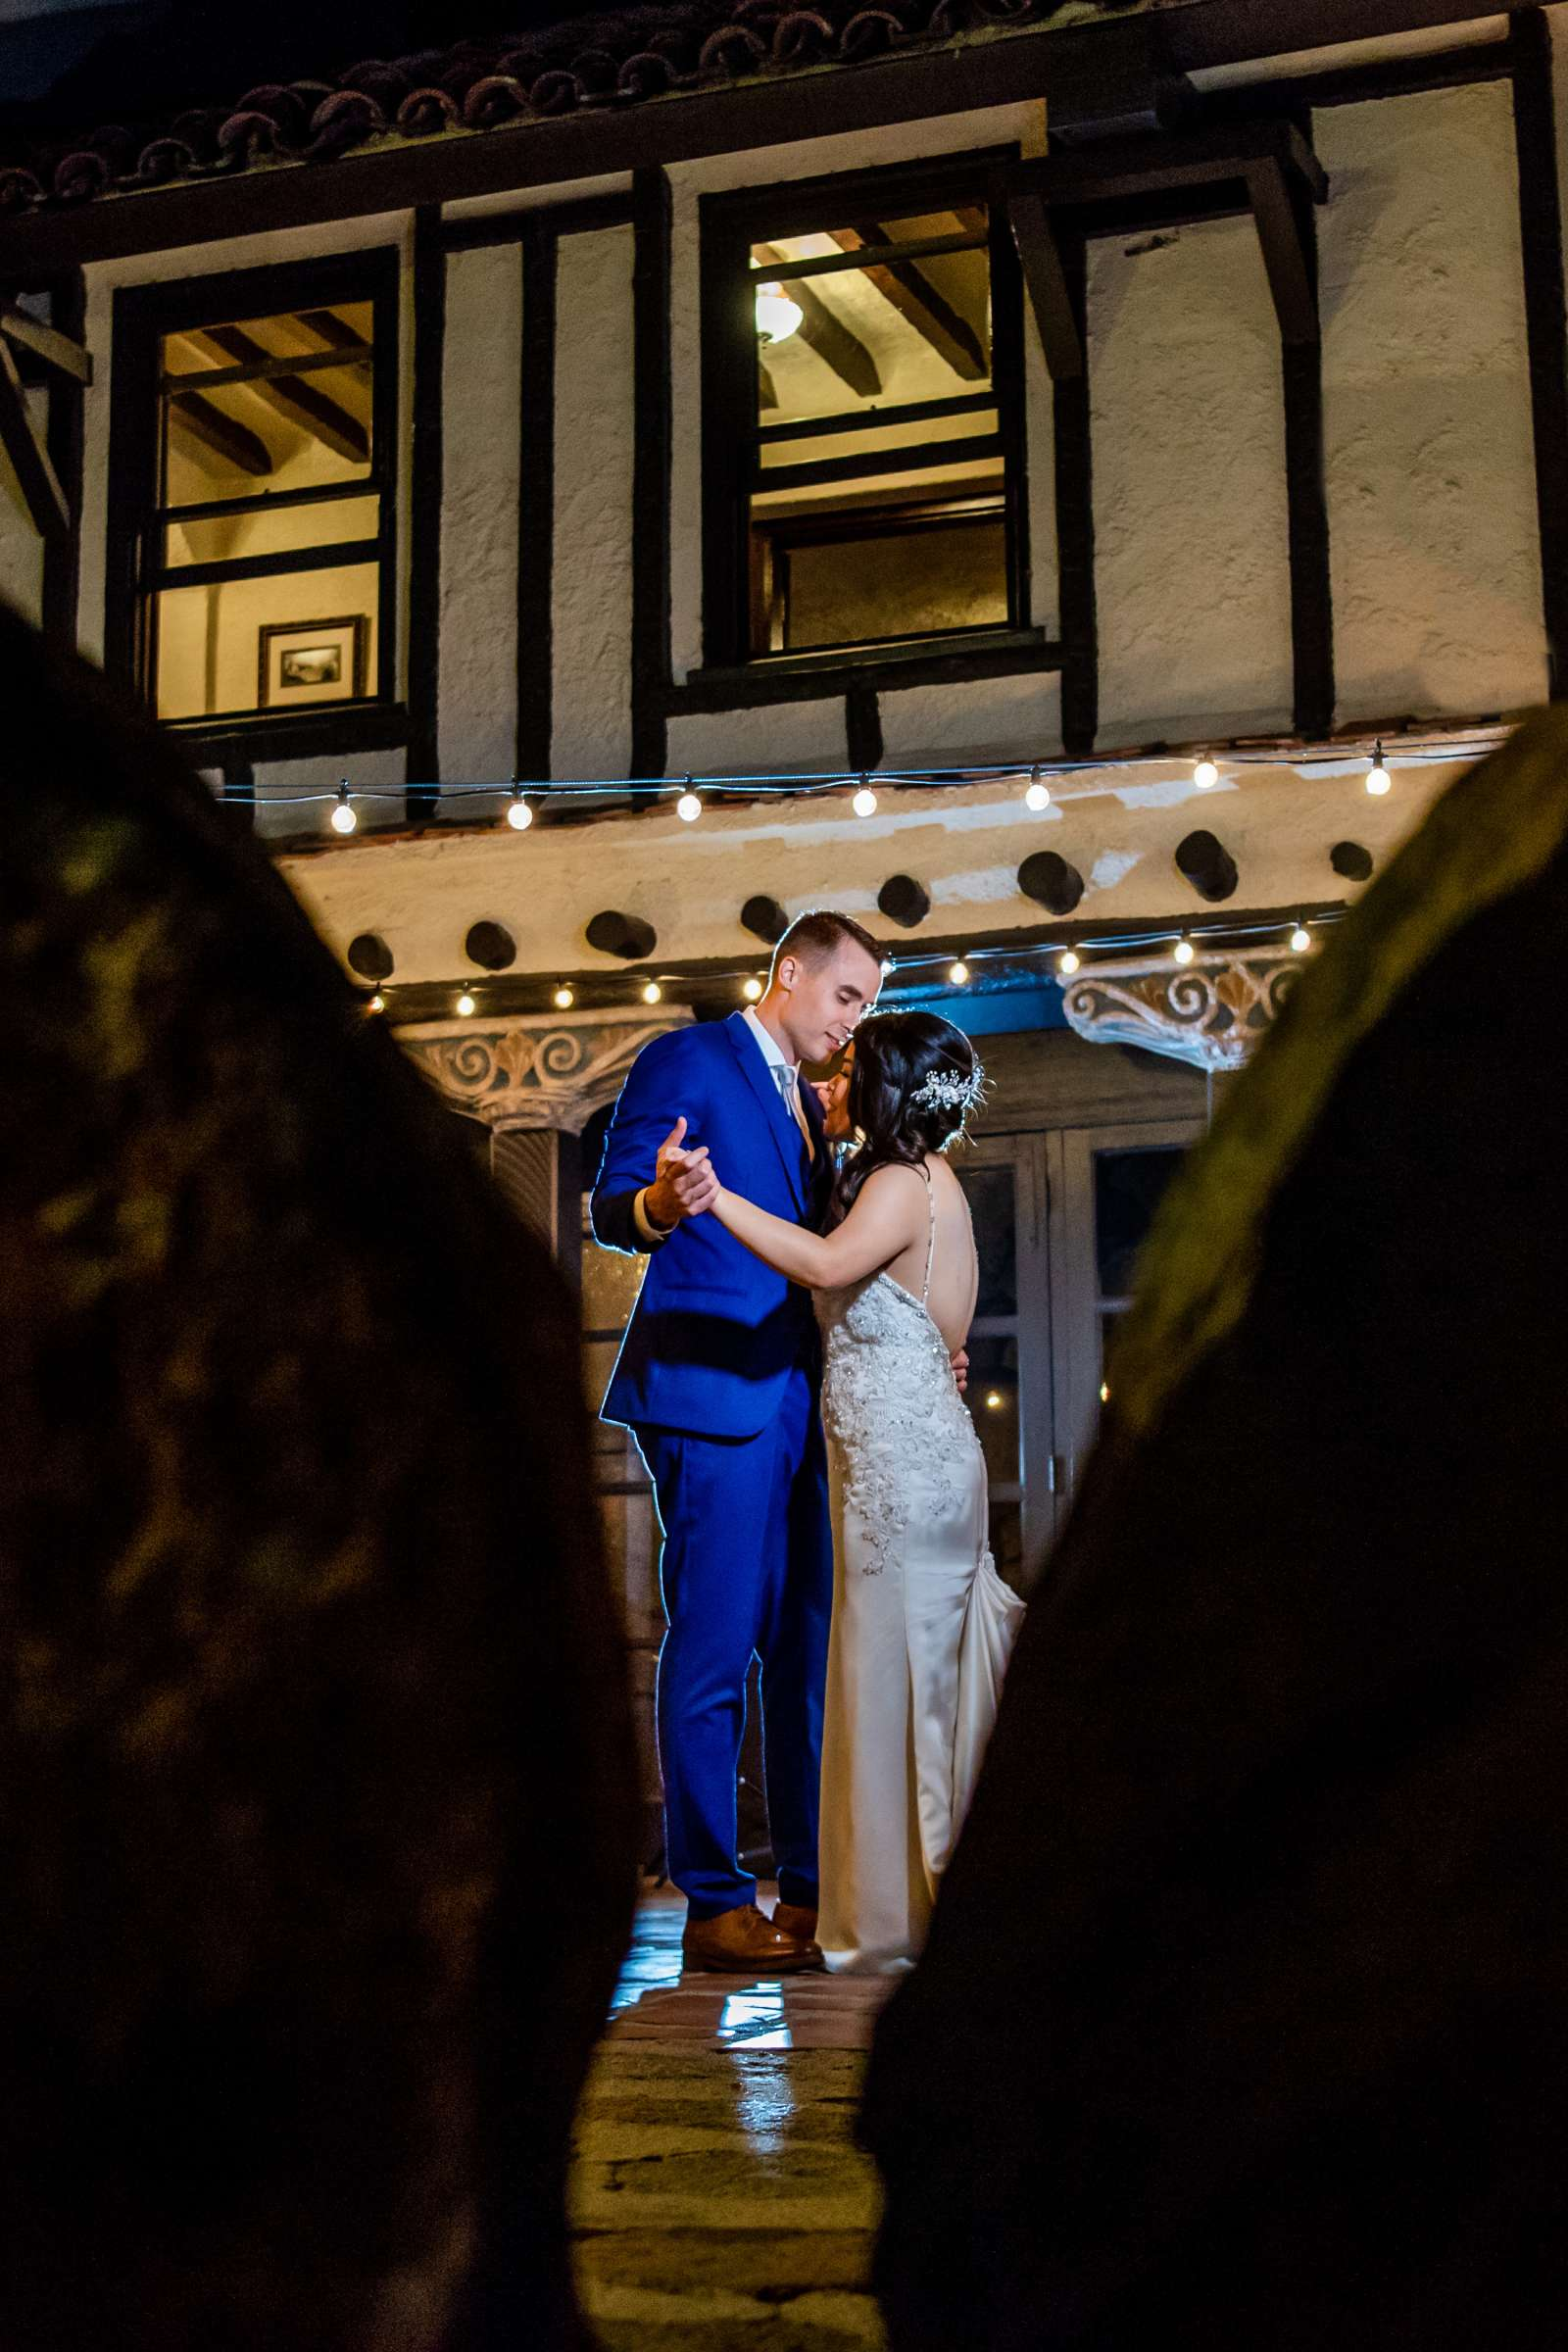 Mt Woodson Castle Wedding coordinated by I Do Weddings, Aya and Jared Wedding Photo #487009 by True Photography